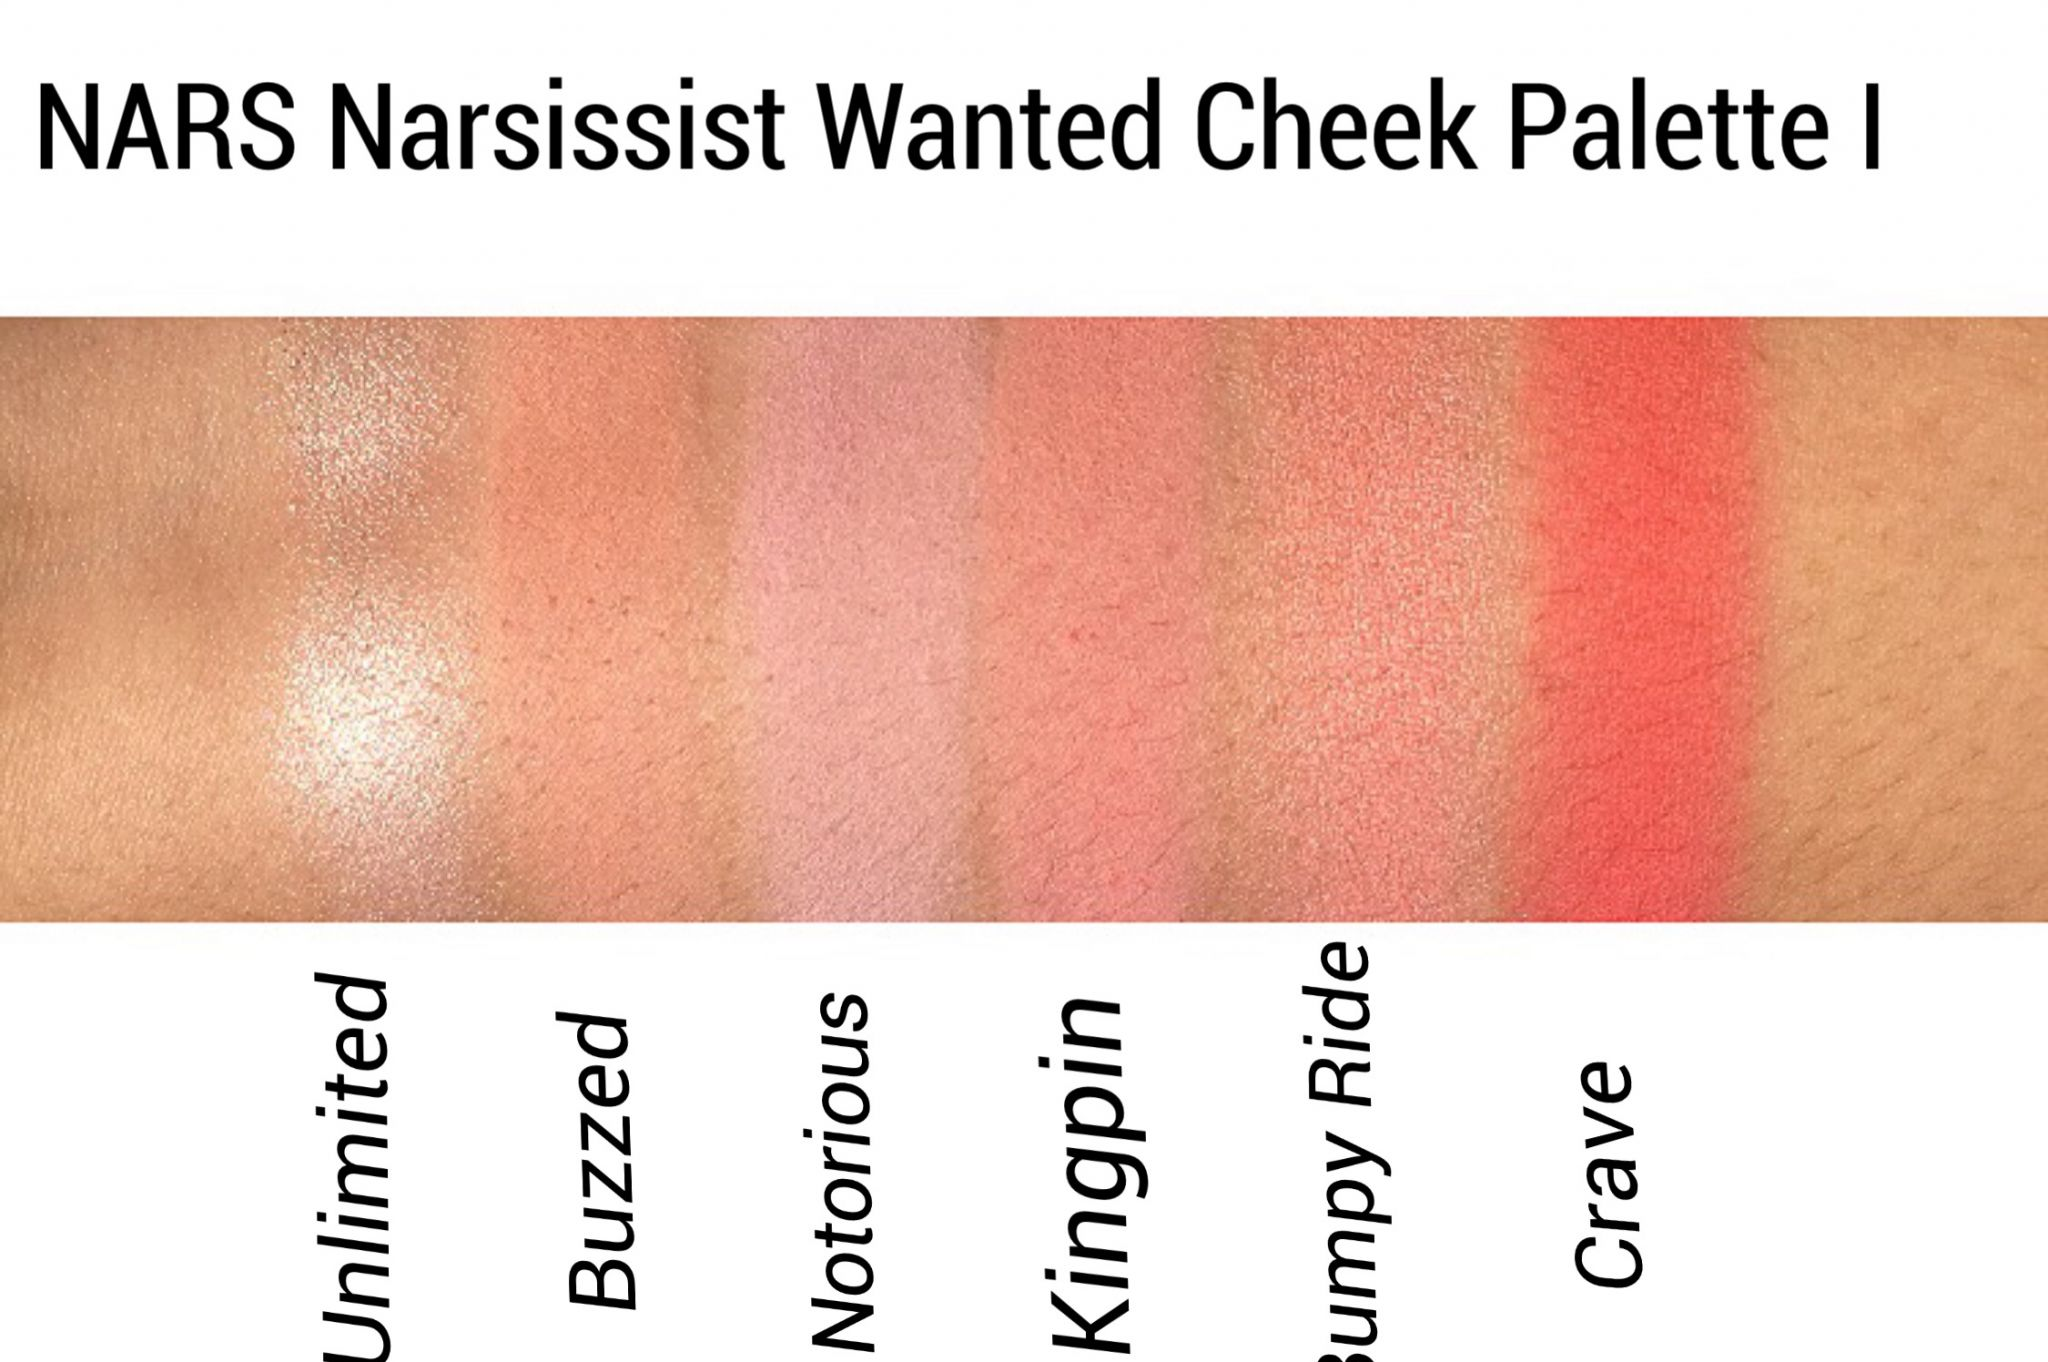 NARSissist Wanted Cheek Palette I by NARS #13